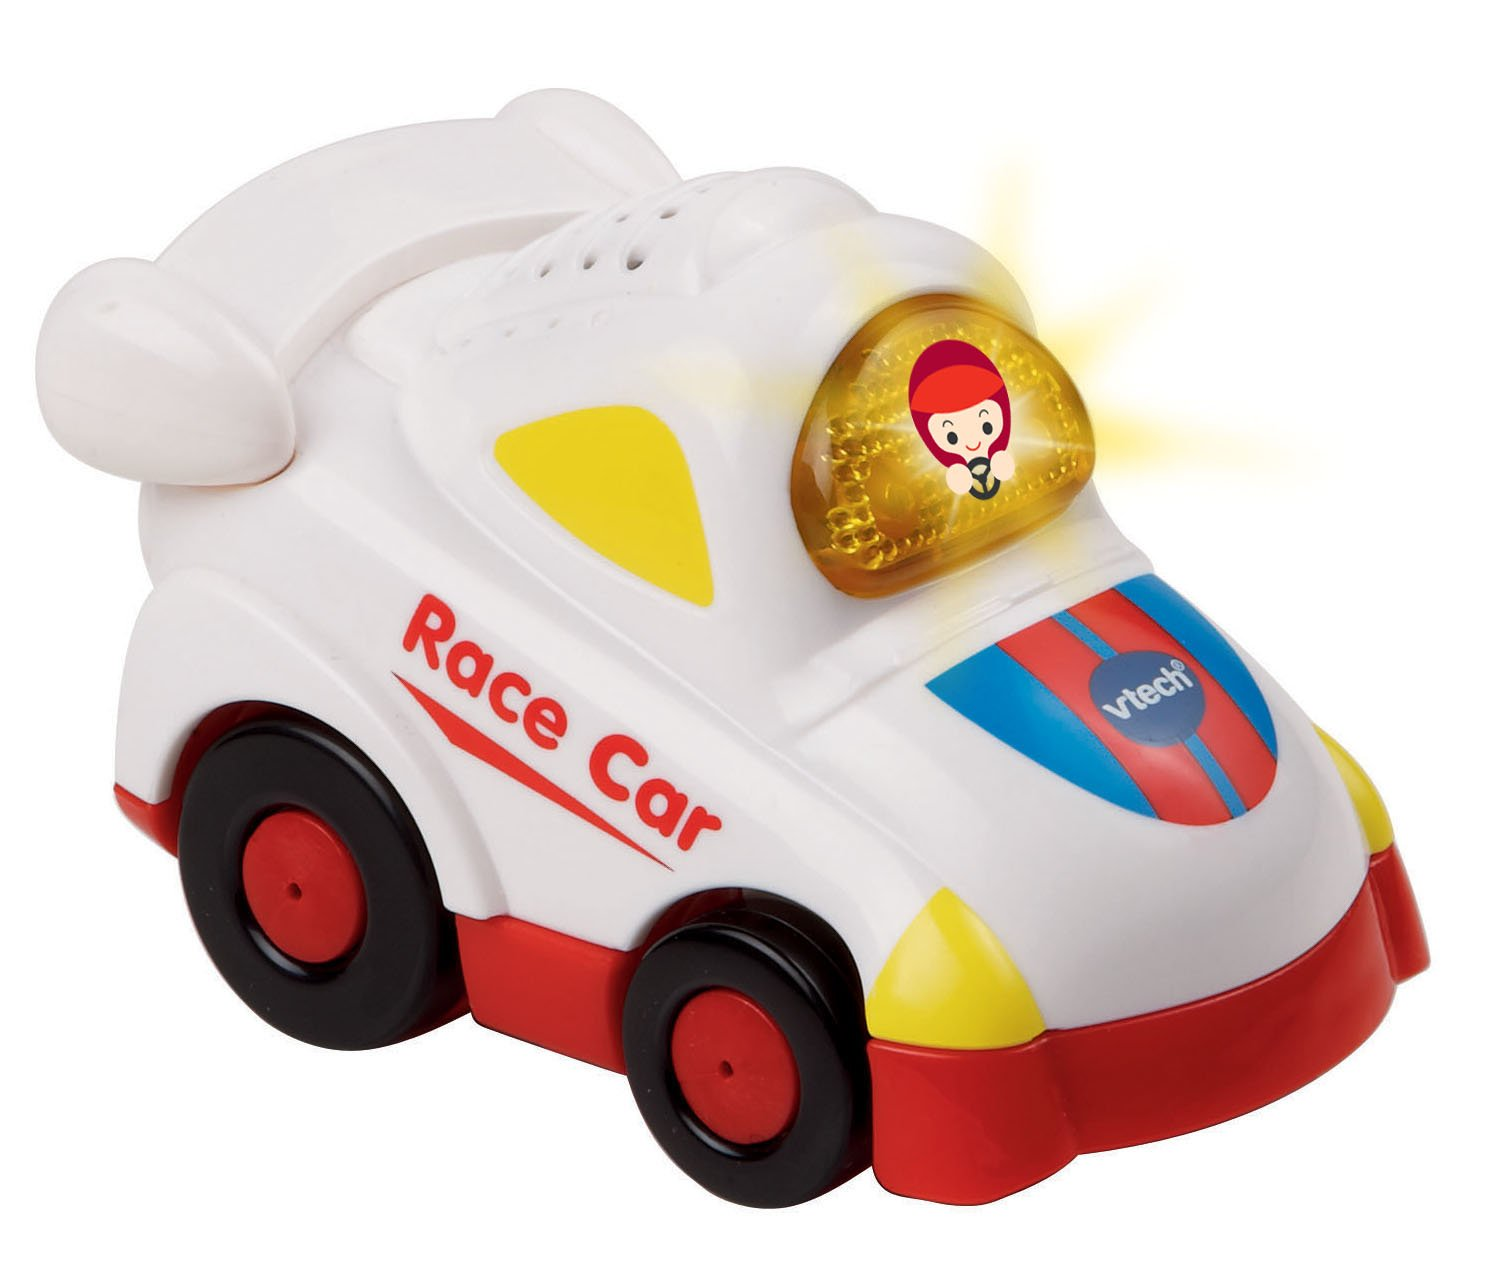 B00BNWI4WA VTech Go! Go! Smart Wheels White Race Car 61sIVA2lS2L